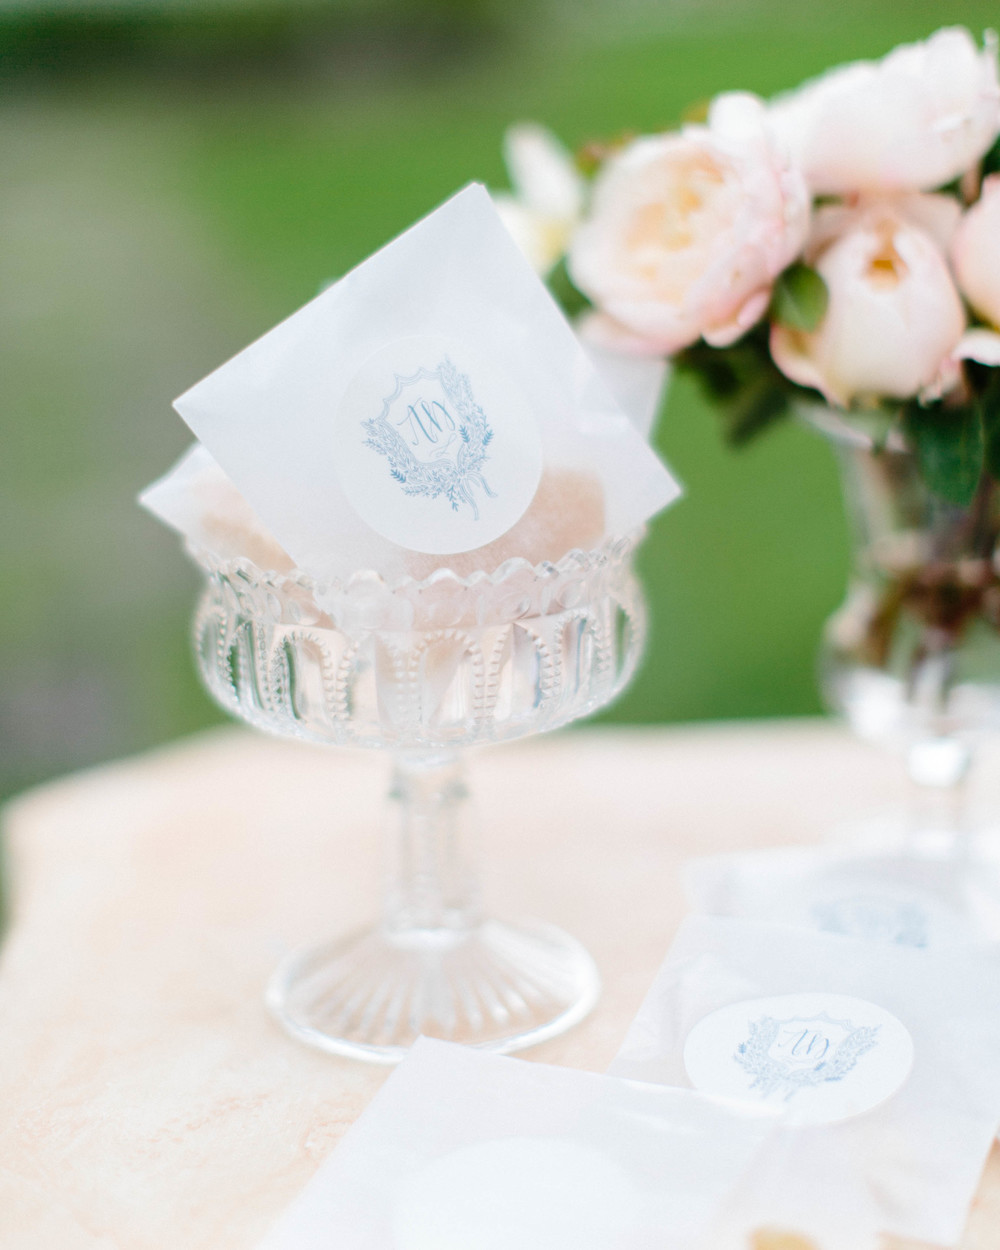 Wedding glassware-vintage glassware-wedding reception inspiration-tablescape-blush florals-peonies-floral inspiration-outdoor wedding-vintage wedding inspiration-wedding gift ideas-